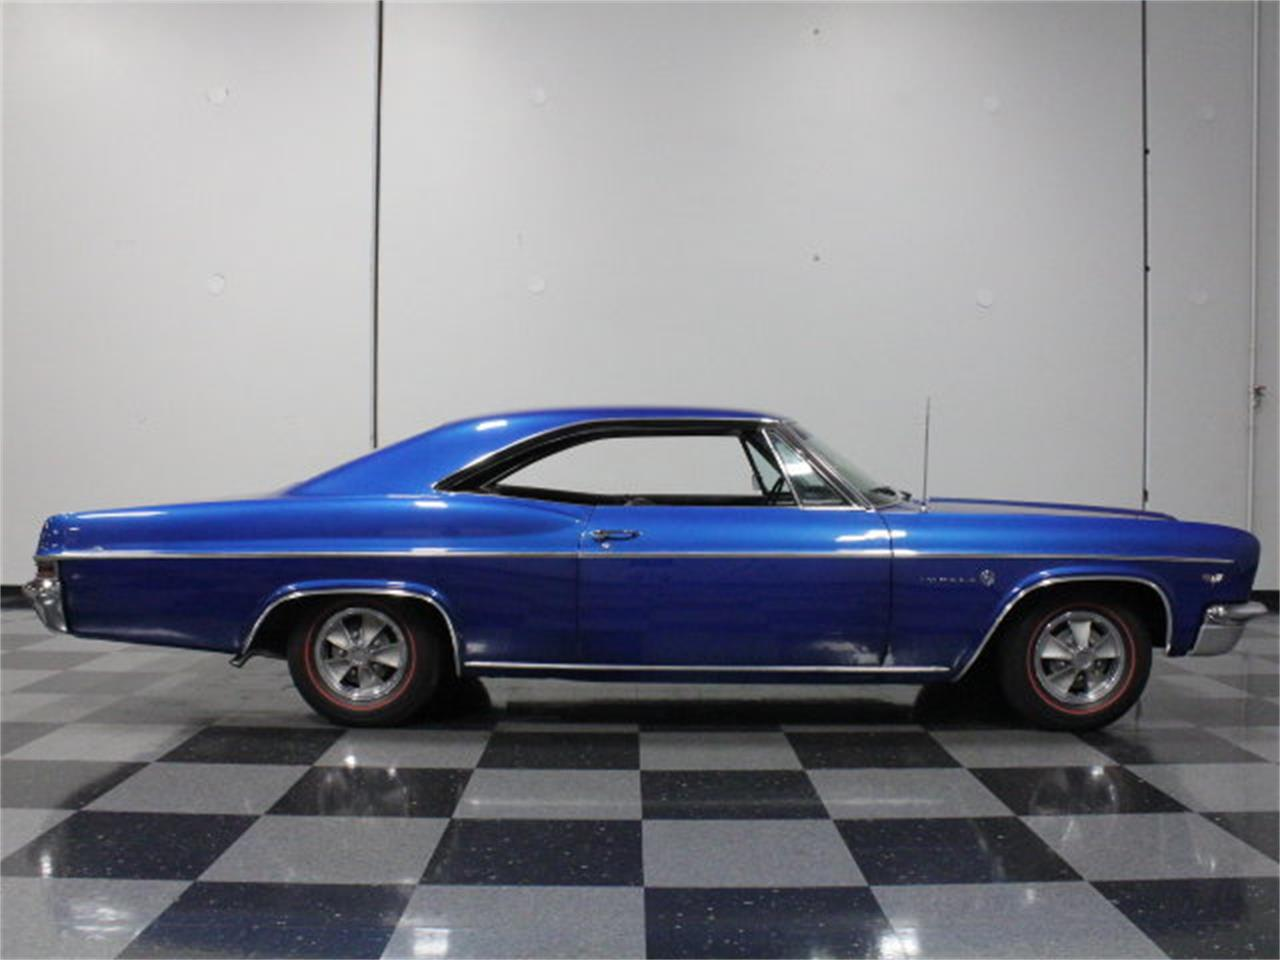 Large Picture of '66 Chevrolet Impala - $19,995.00 - CVFL